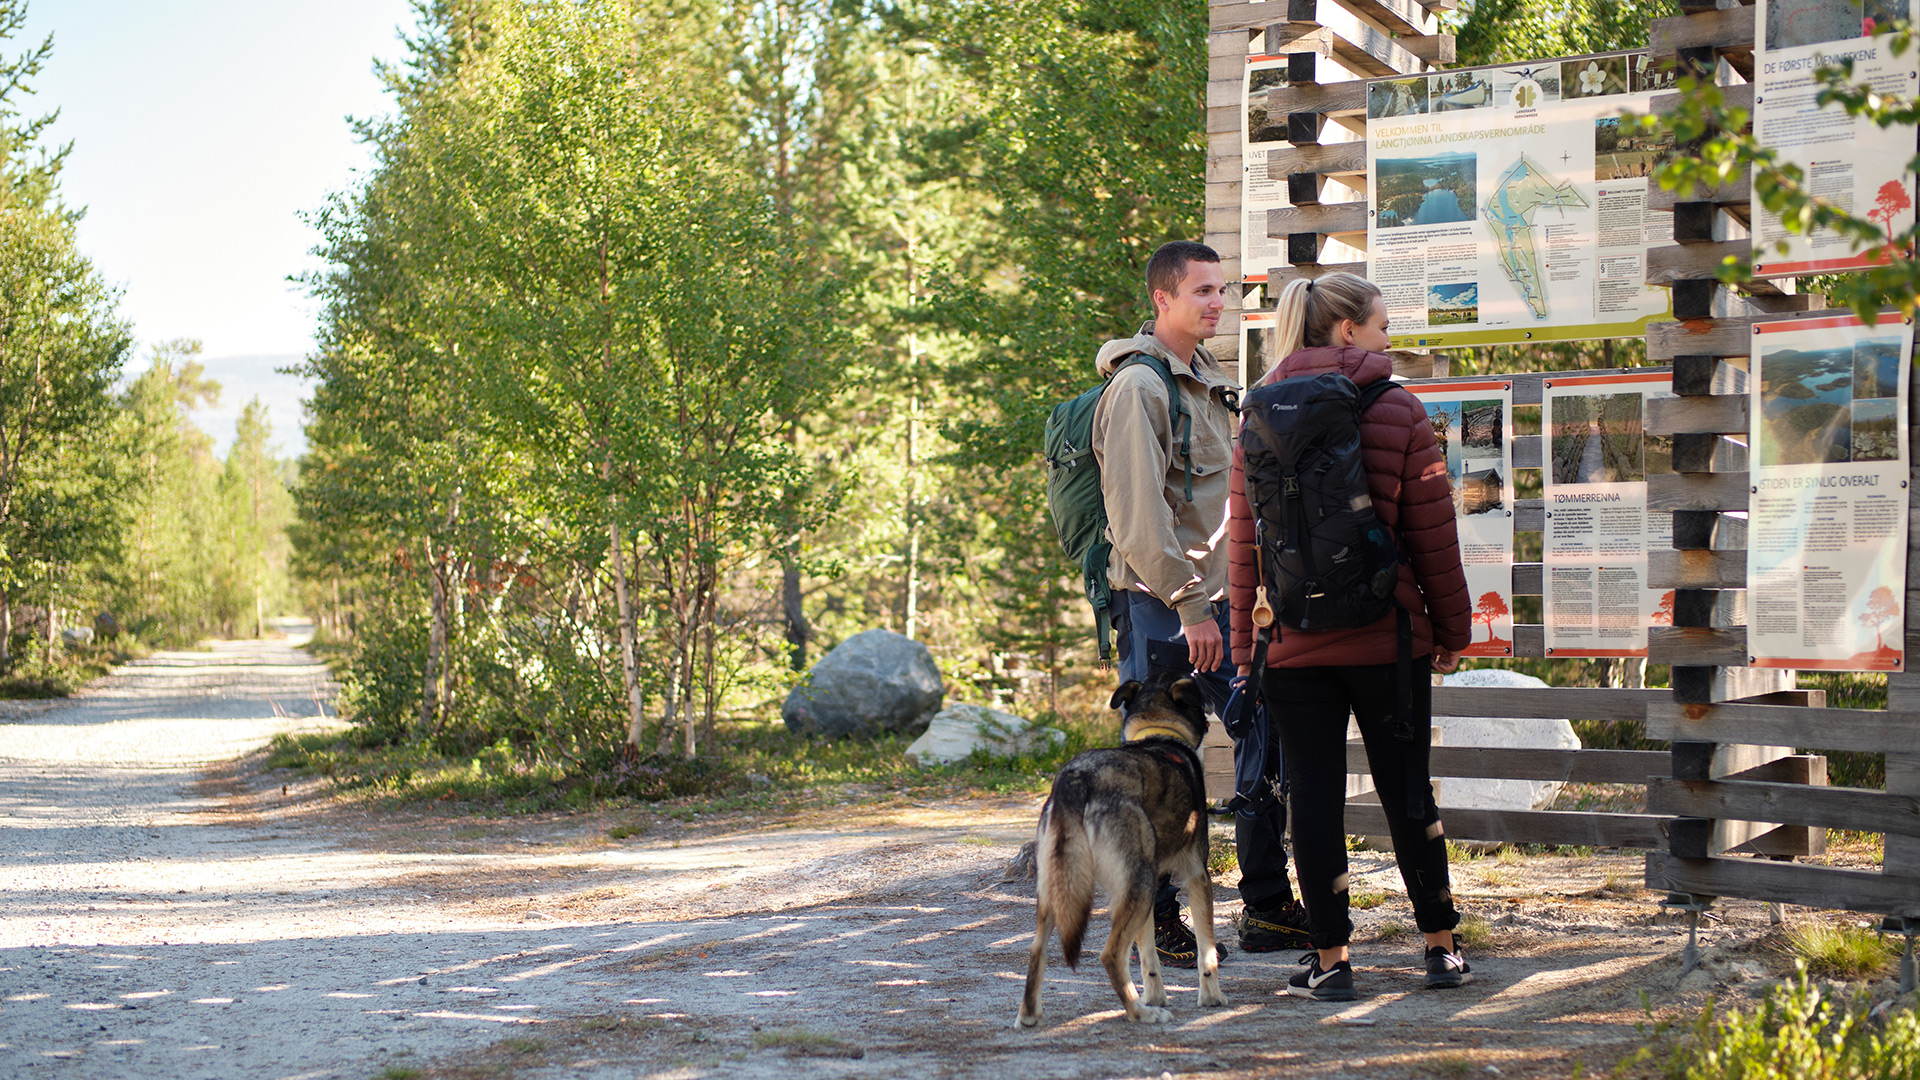 Persons and a dog hiking.